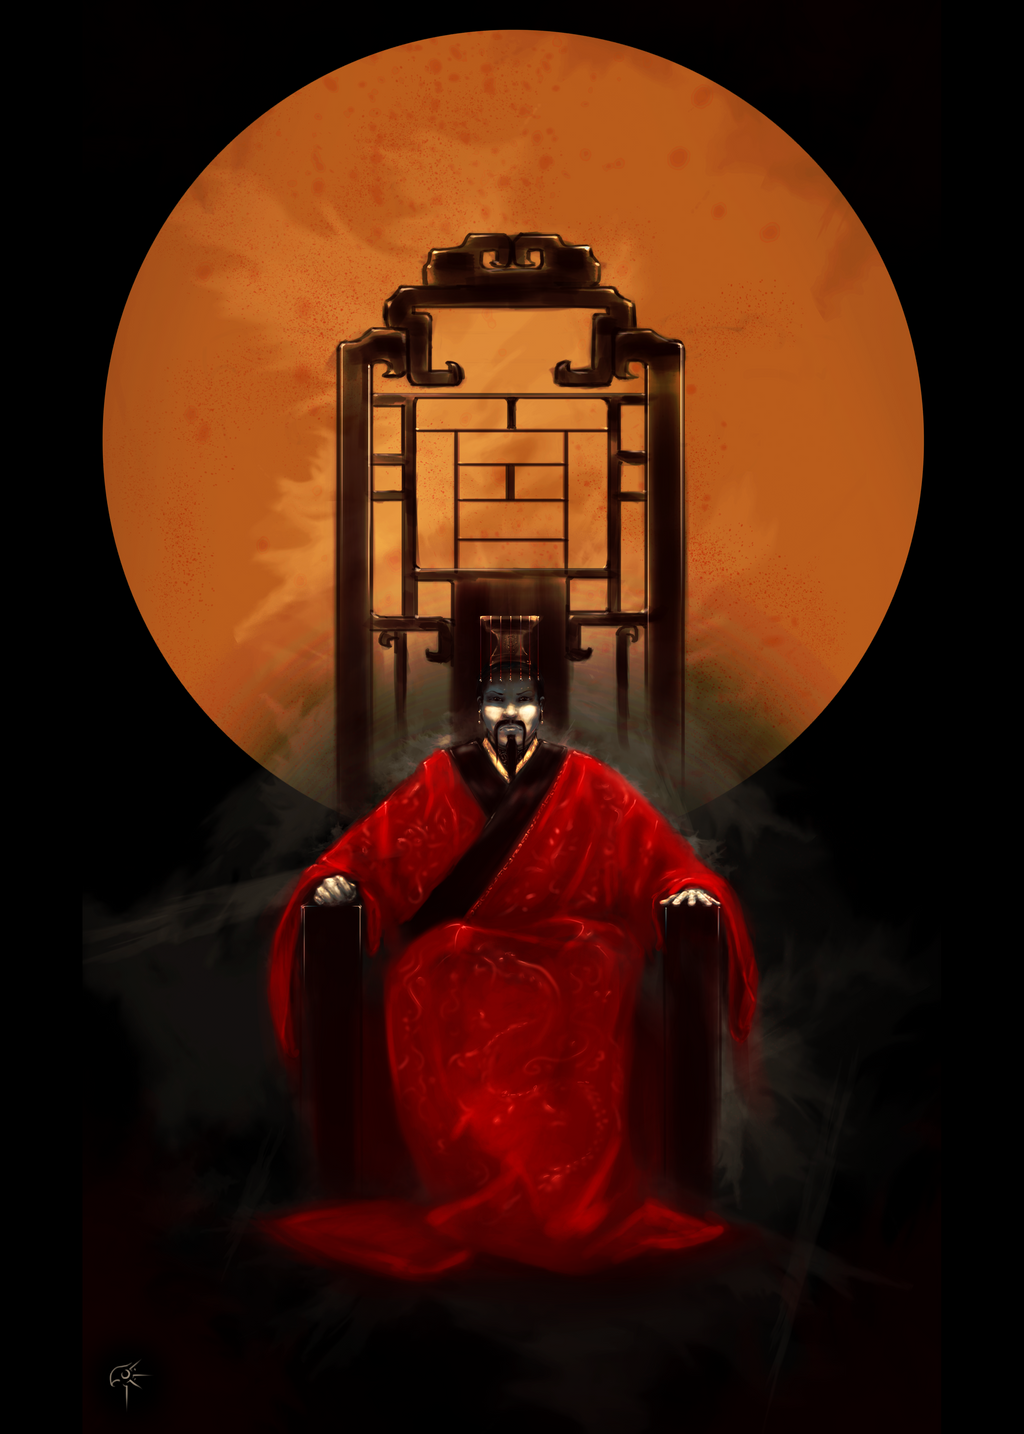 Chinese emperor by Oneyric on DeviantArt